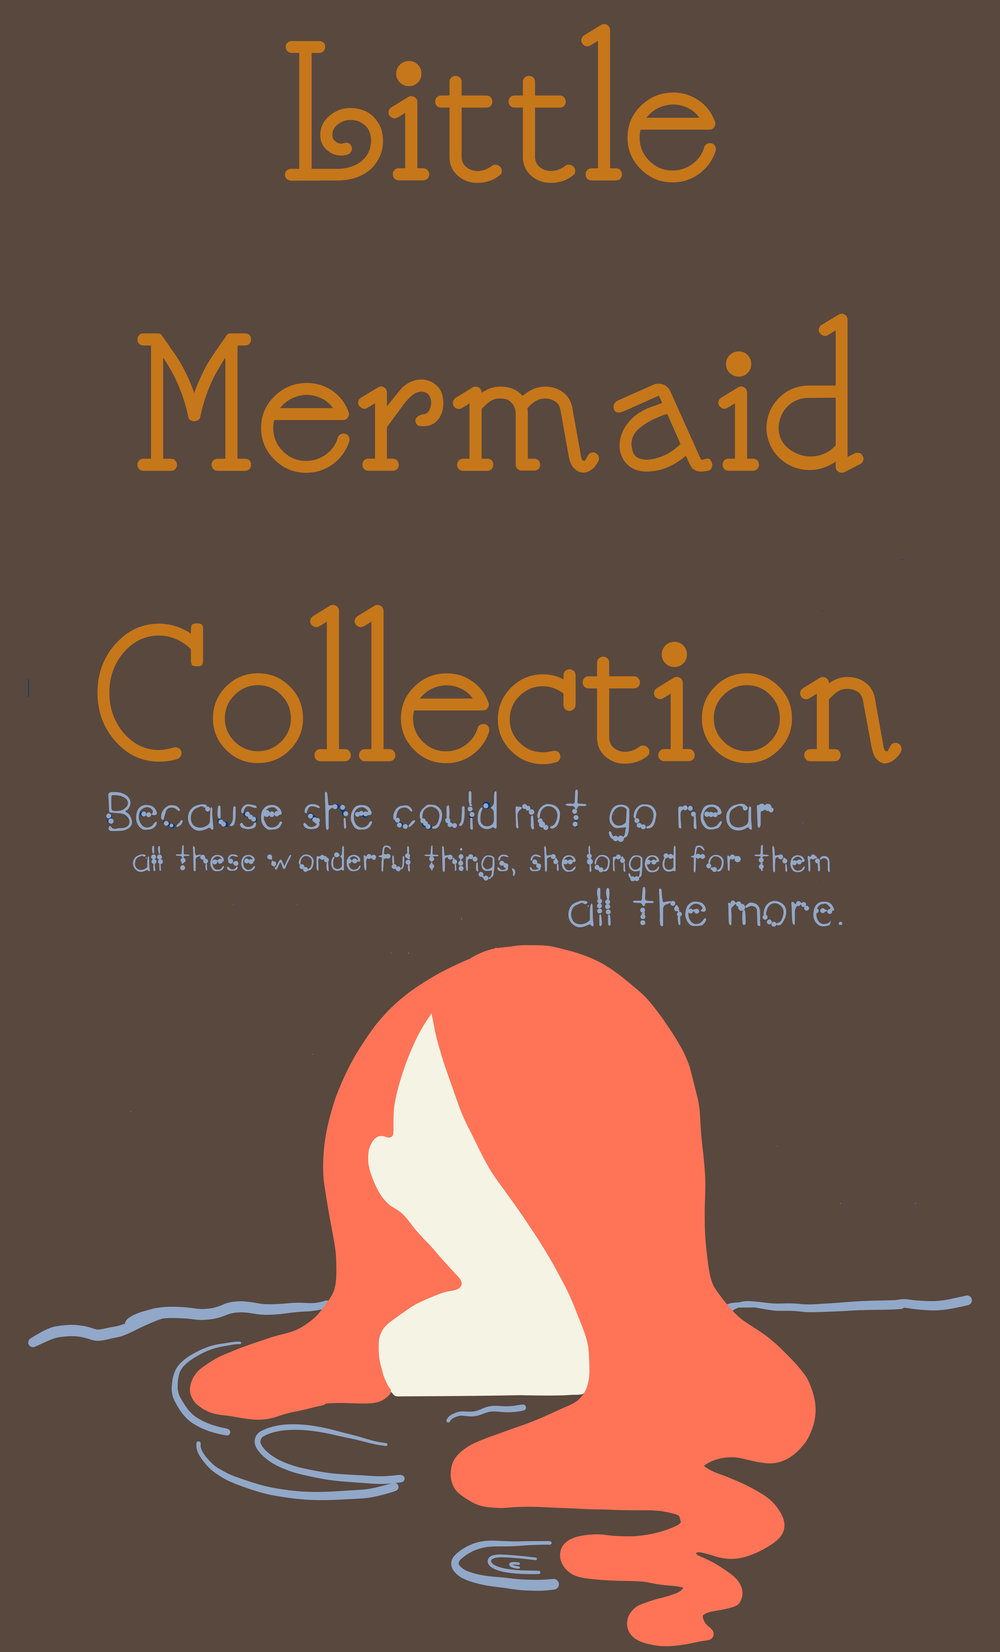 Little Mermaid Collection Banner